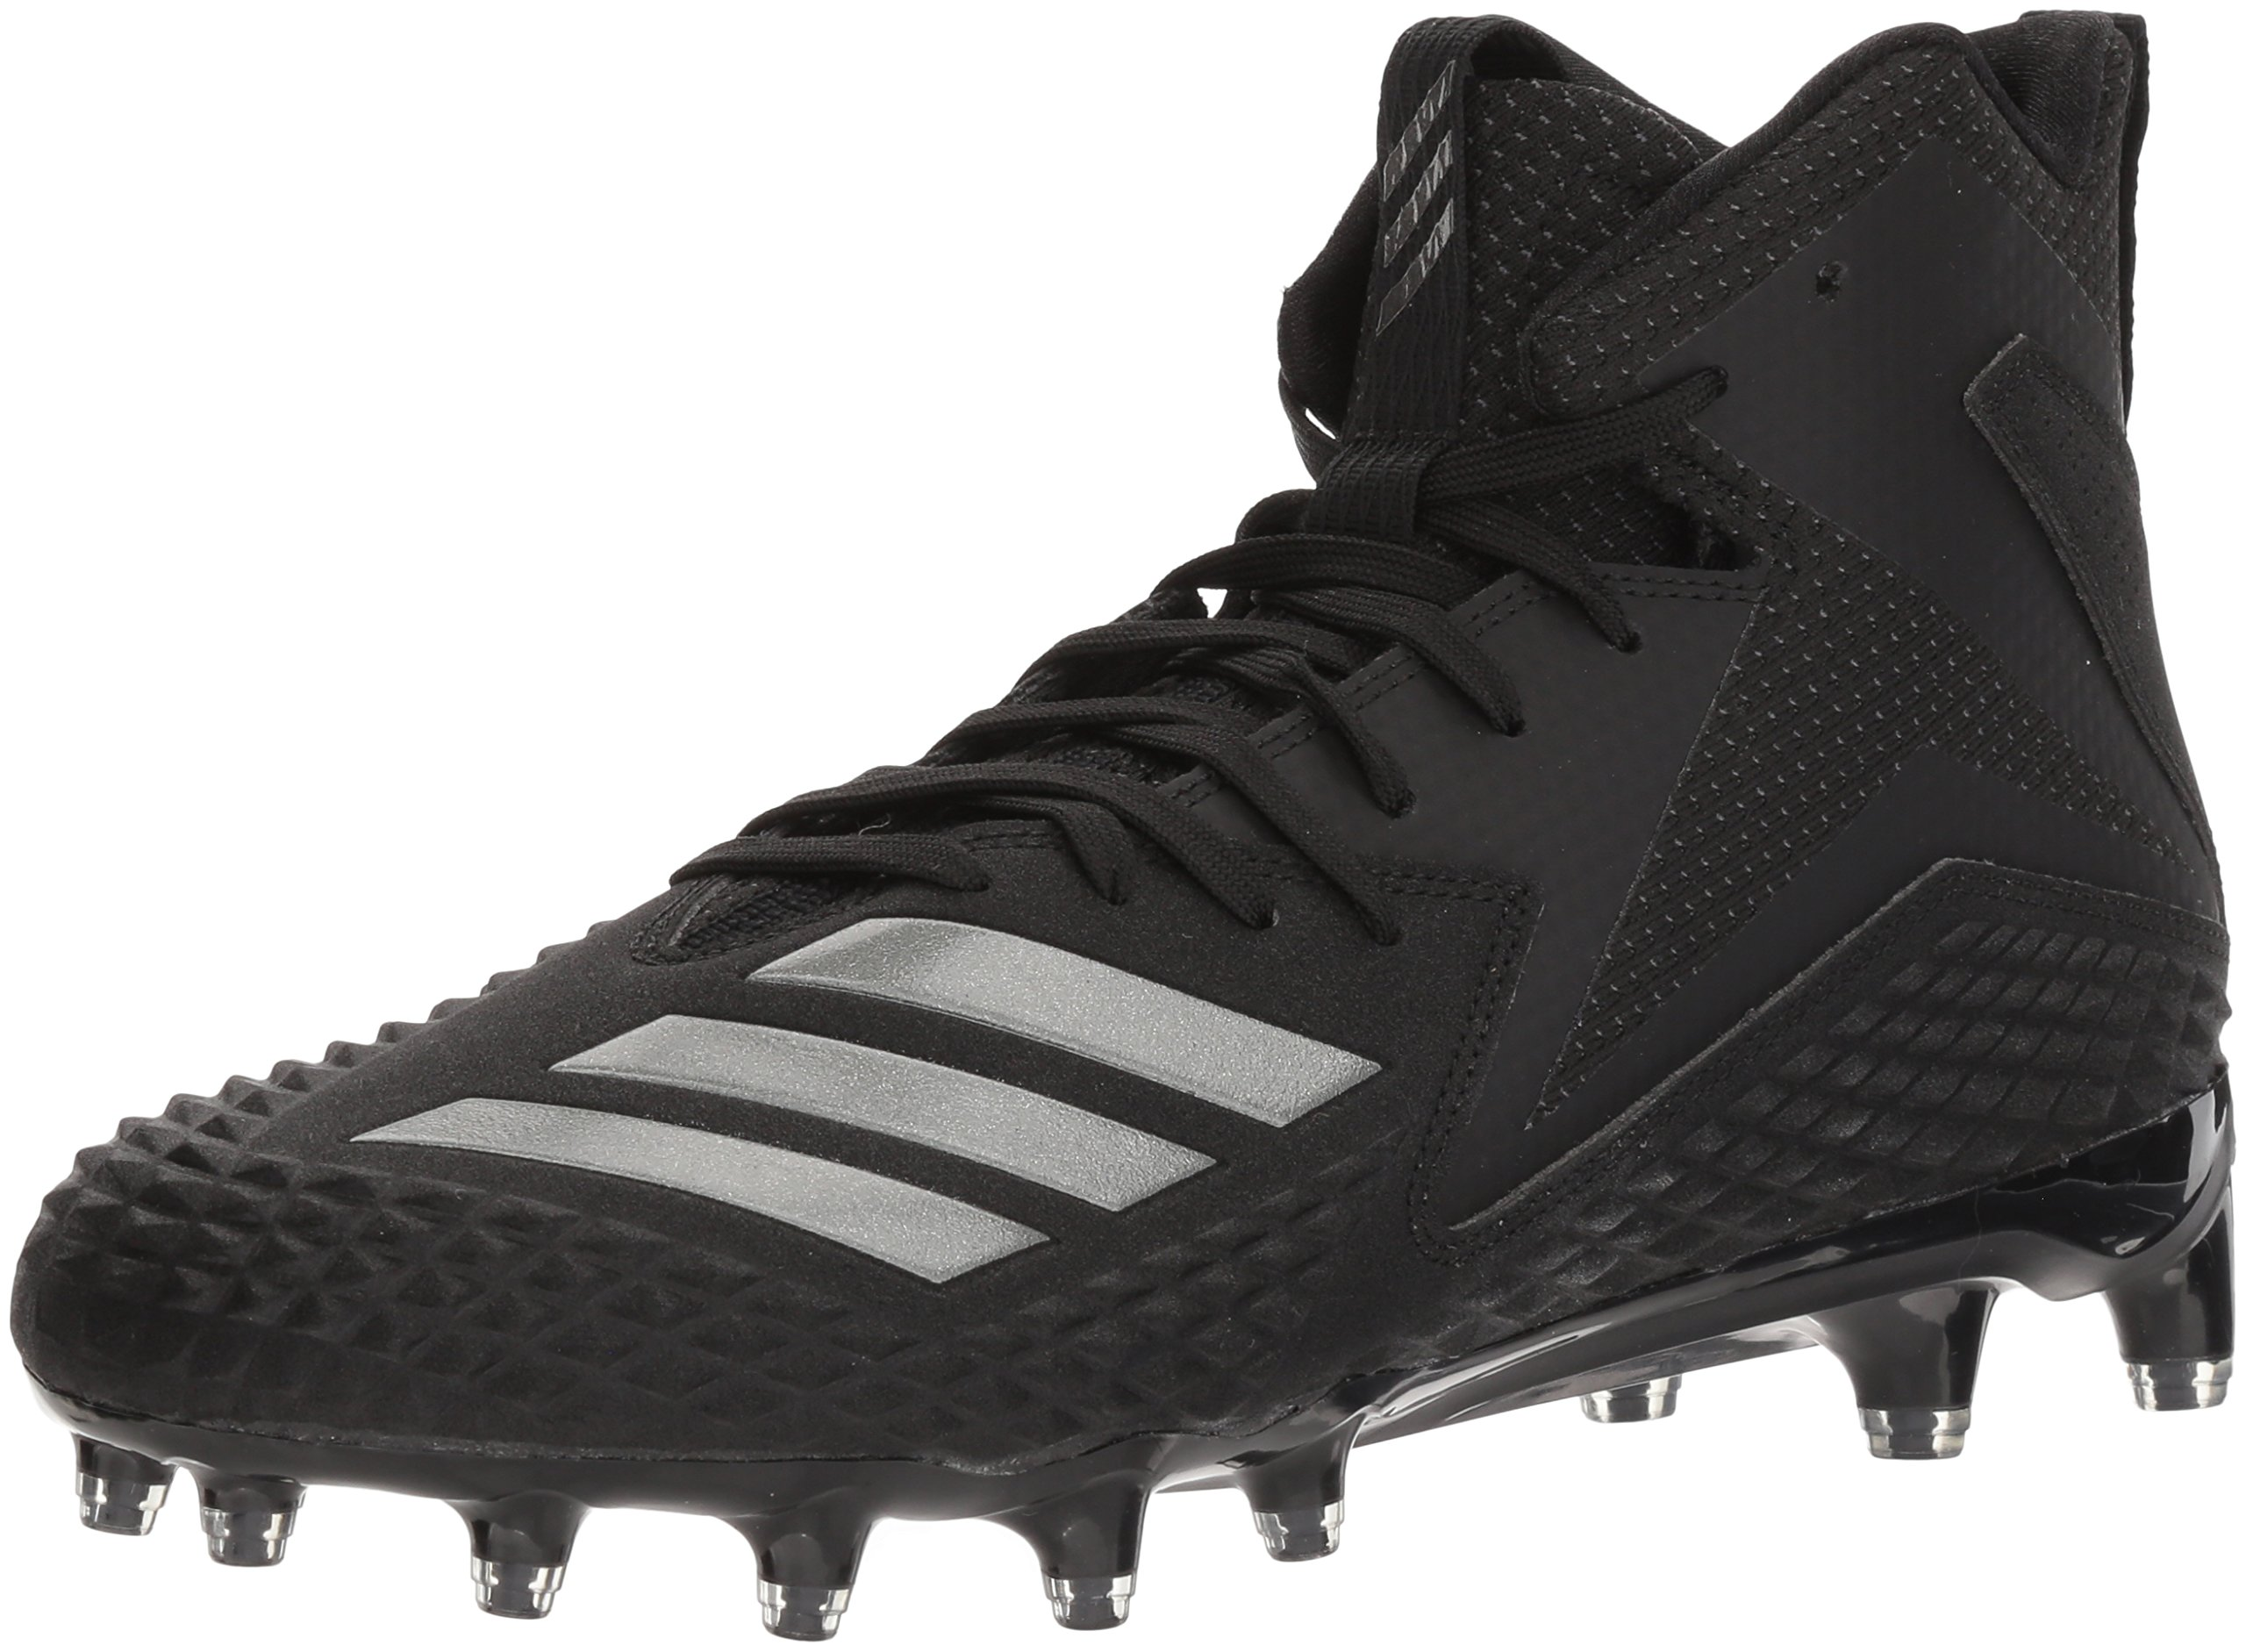 adidas Men's Freak X Carbon Mid Football Shoe, Black, 8 M US